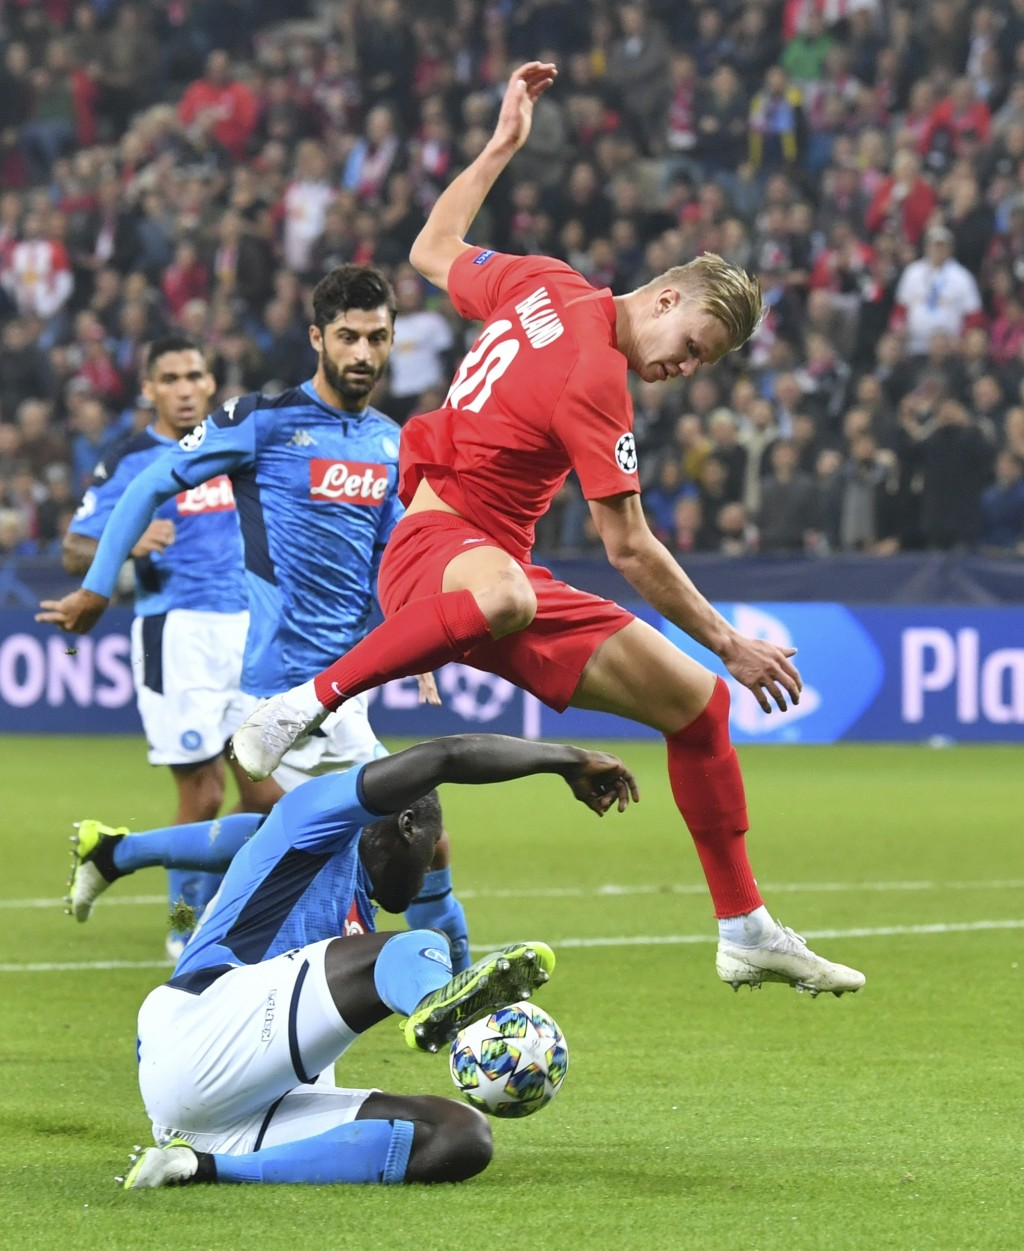 Salzburg's Erling Braut Haaland, atop, duels for the ball against Napoli's Kalidou Koulibaly during the Champions League Group E soccer match between ...